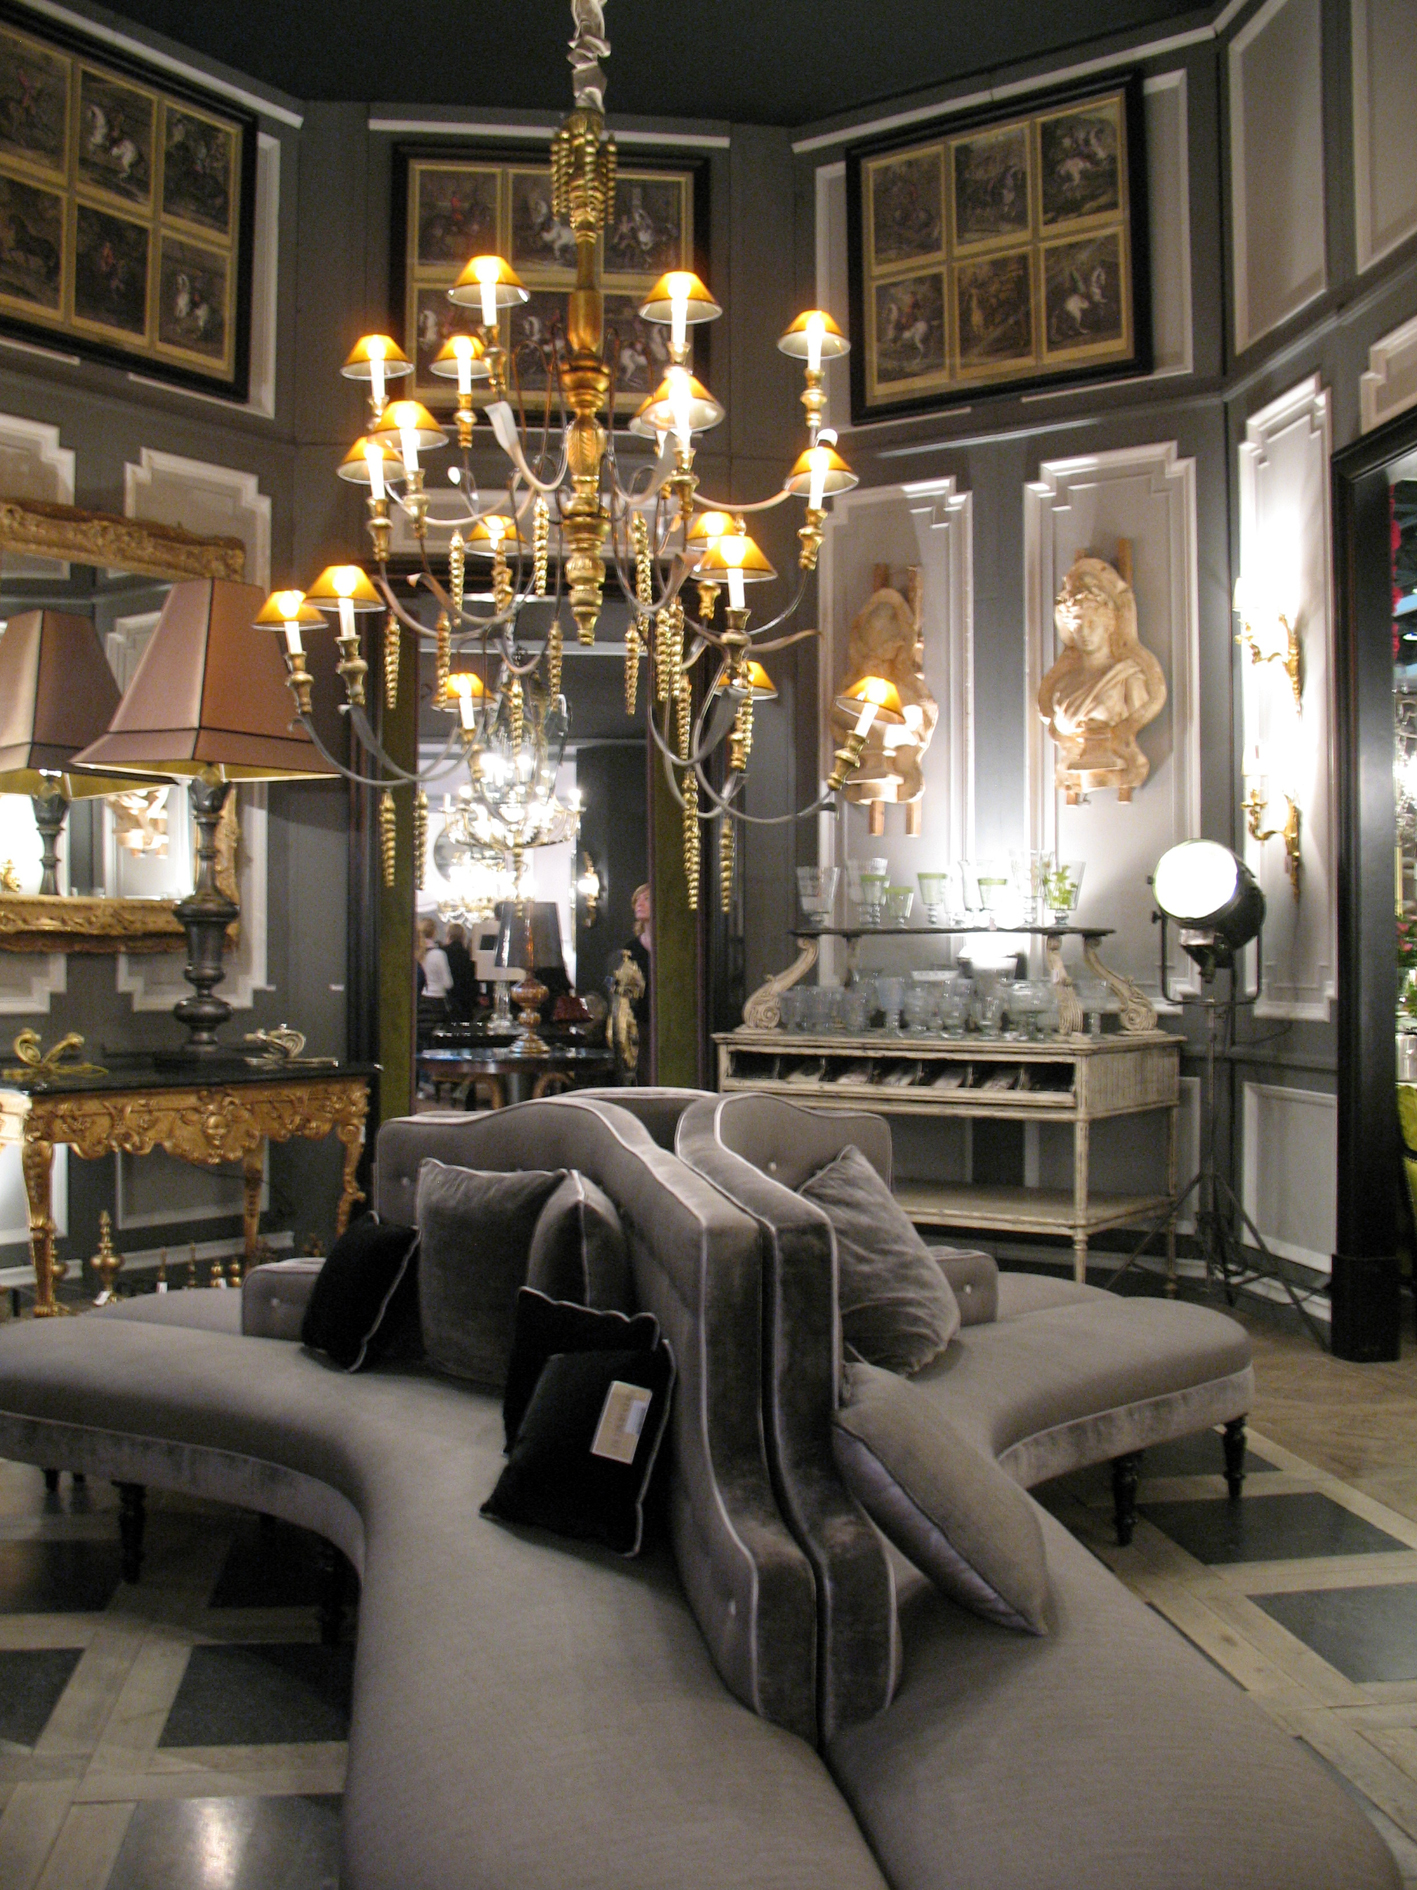 maison objet janvier 2011 taller y medio. Black Bedroom Furniture Sets. Home Design Ideas